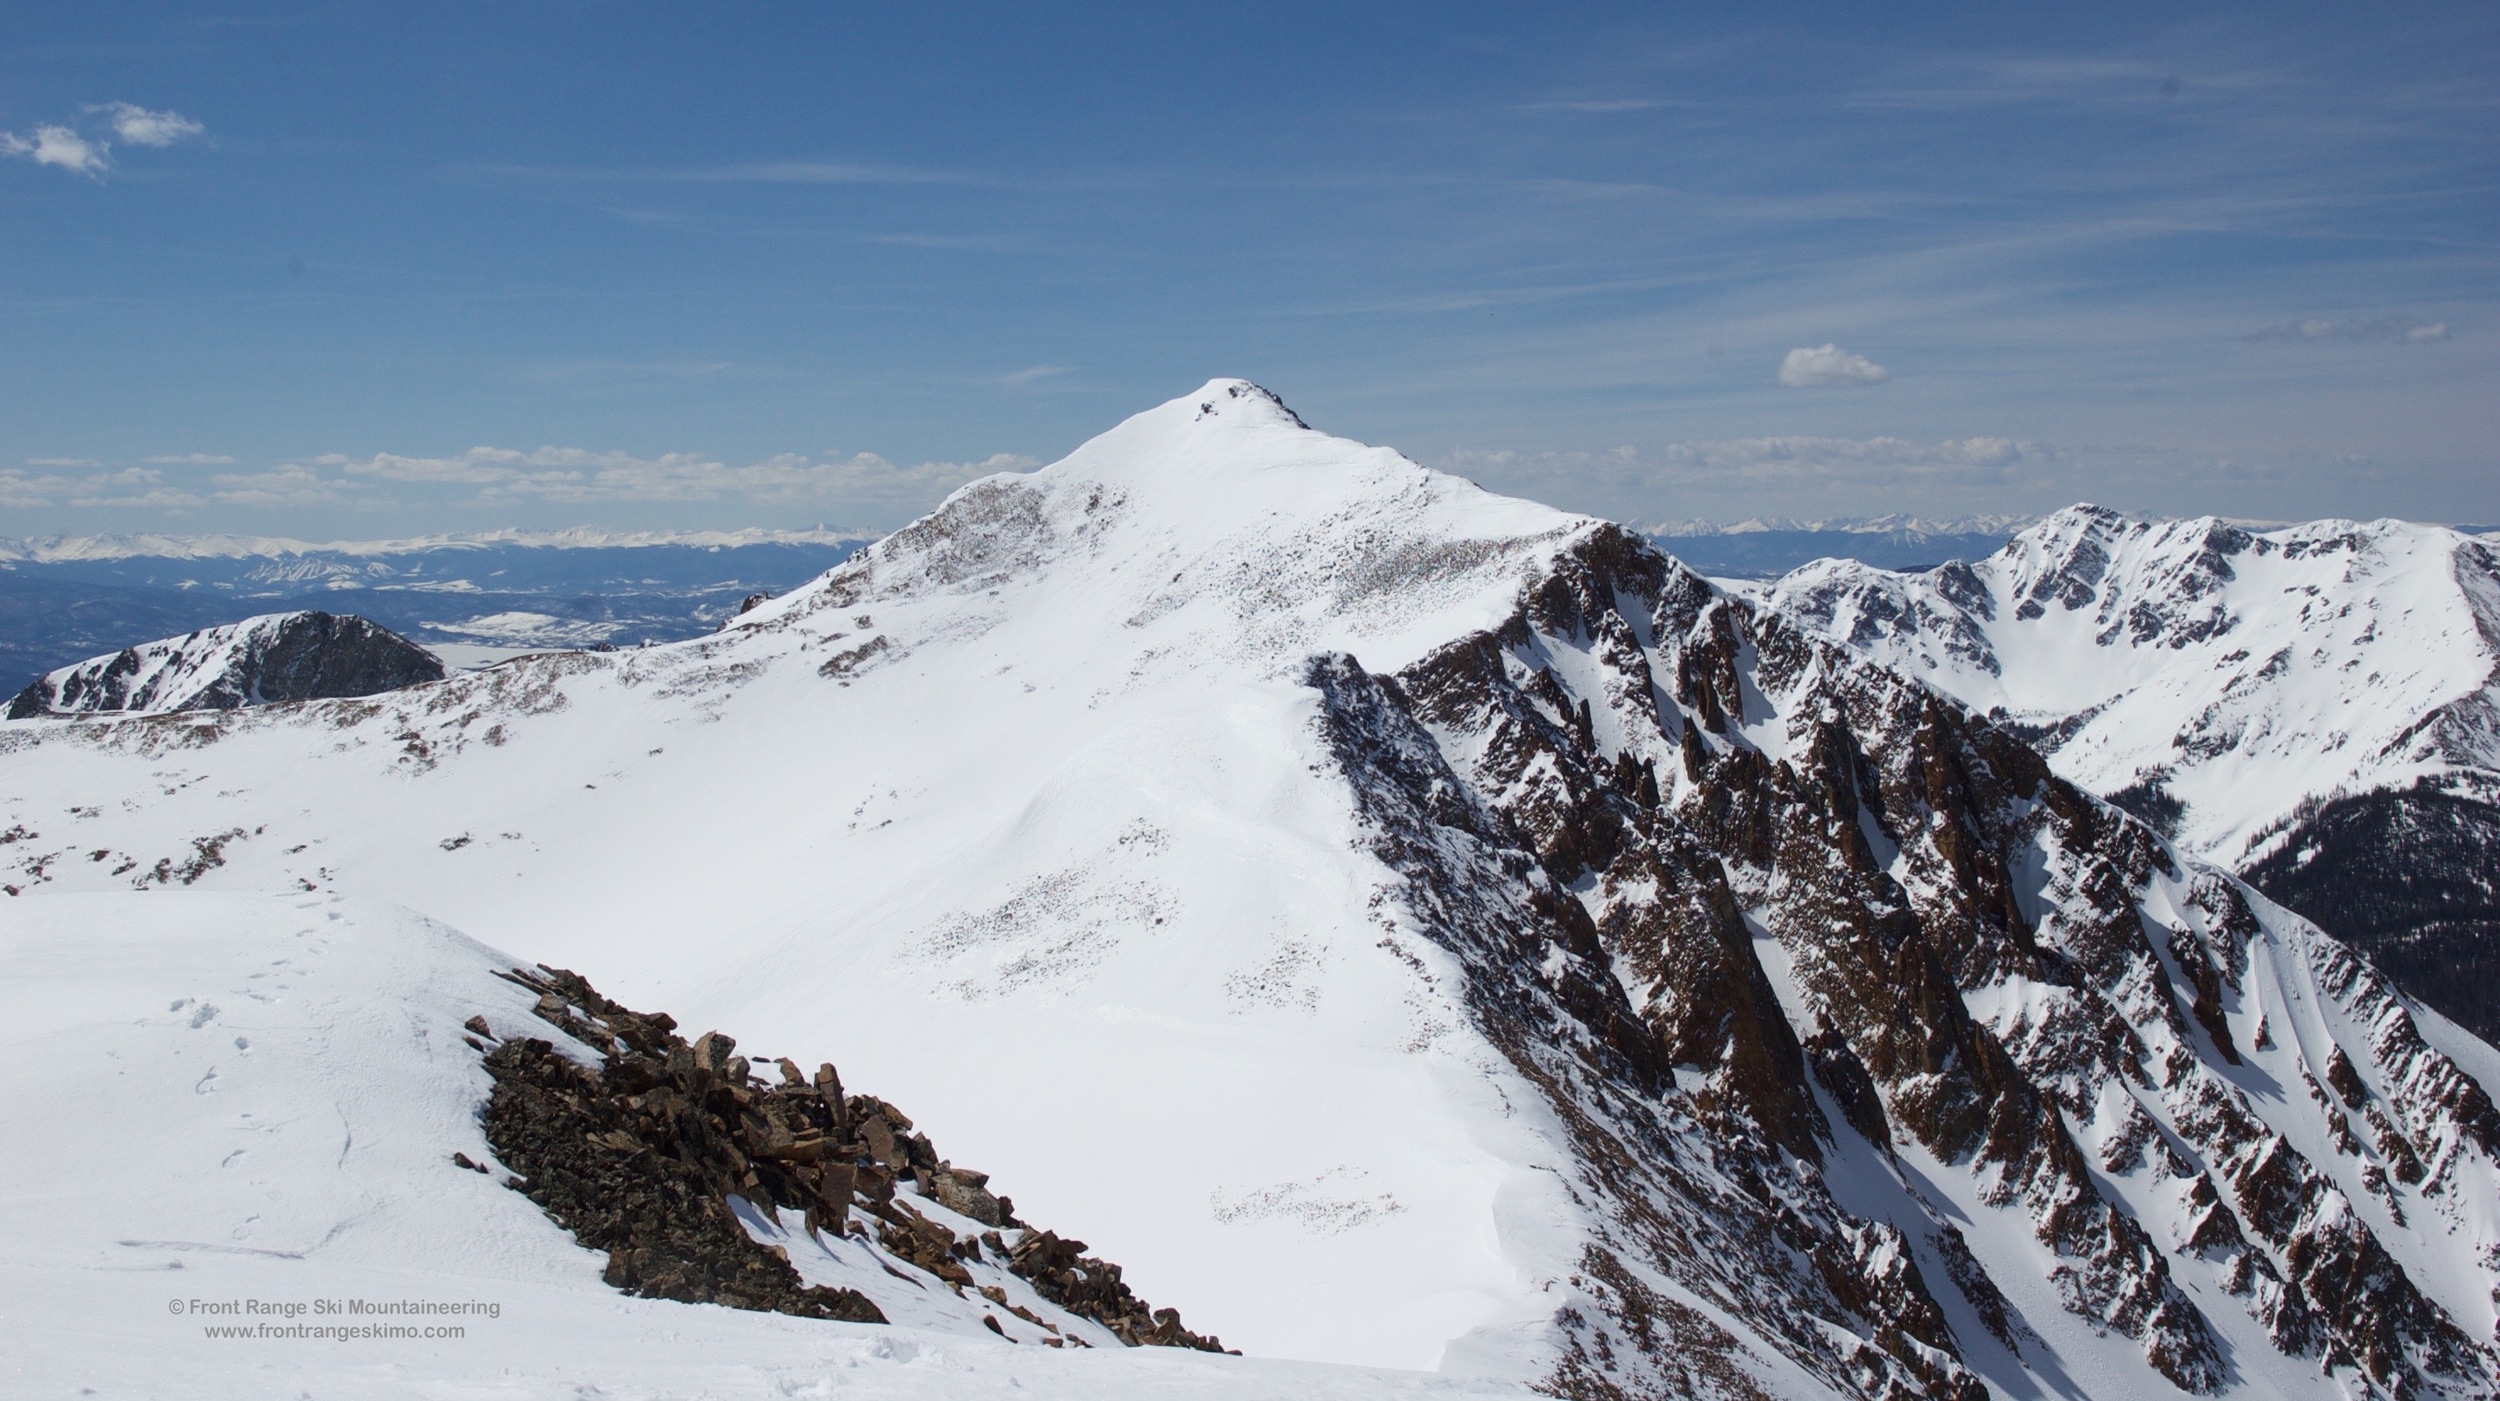 Mount Nimbus as seen from Mount Cumulus.